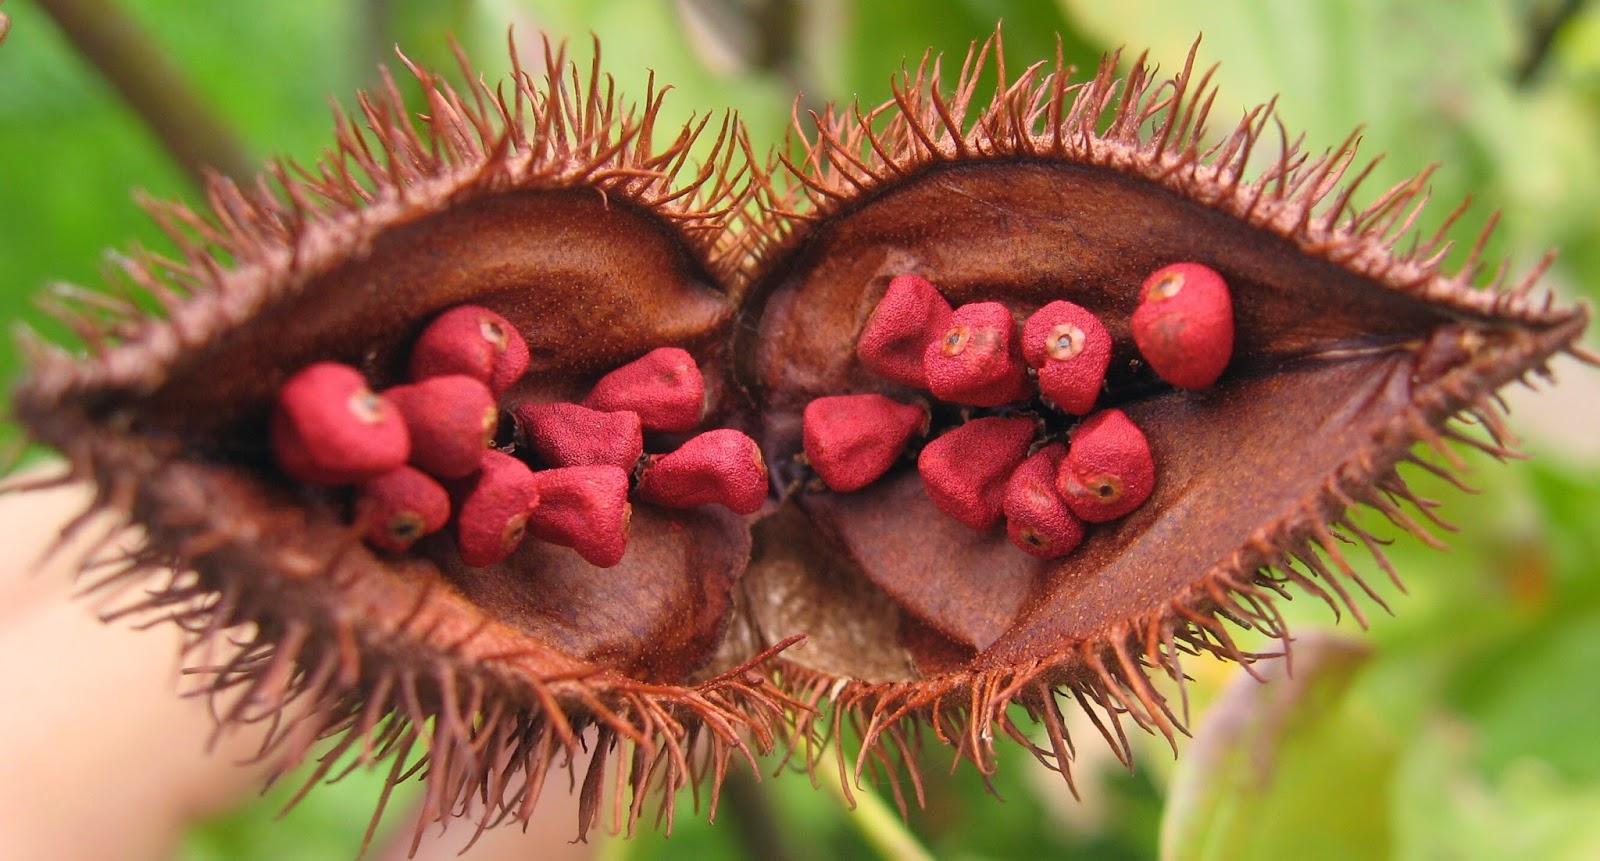 Health and Human Biology: Annatto Food Colour and Allergy Symptoms